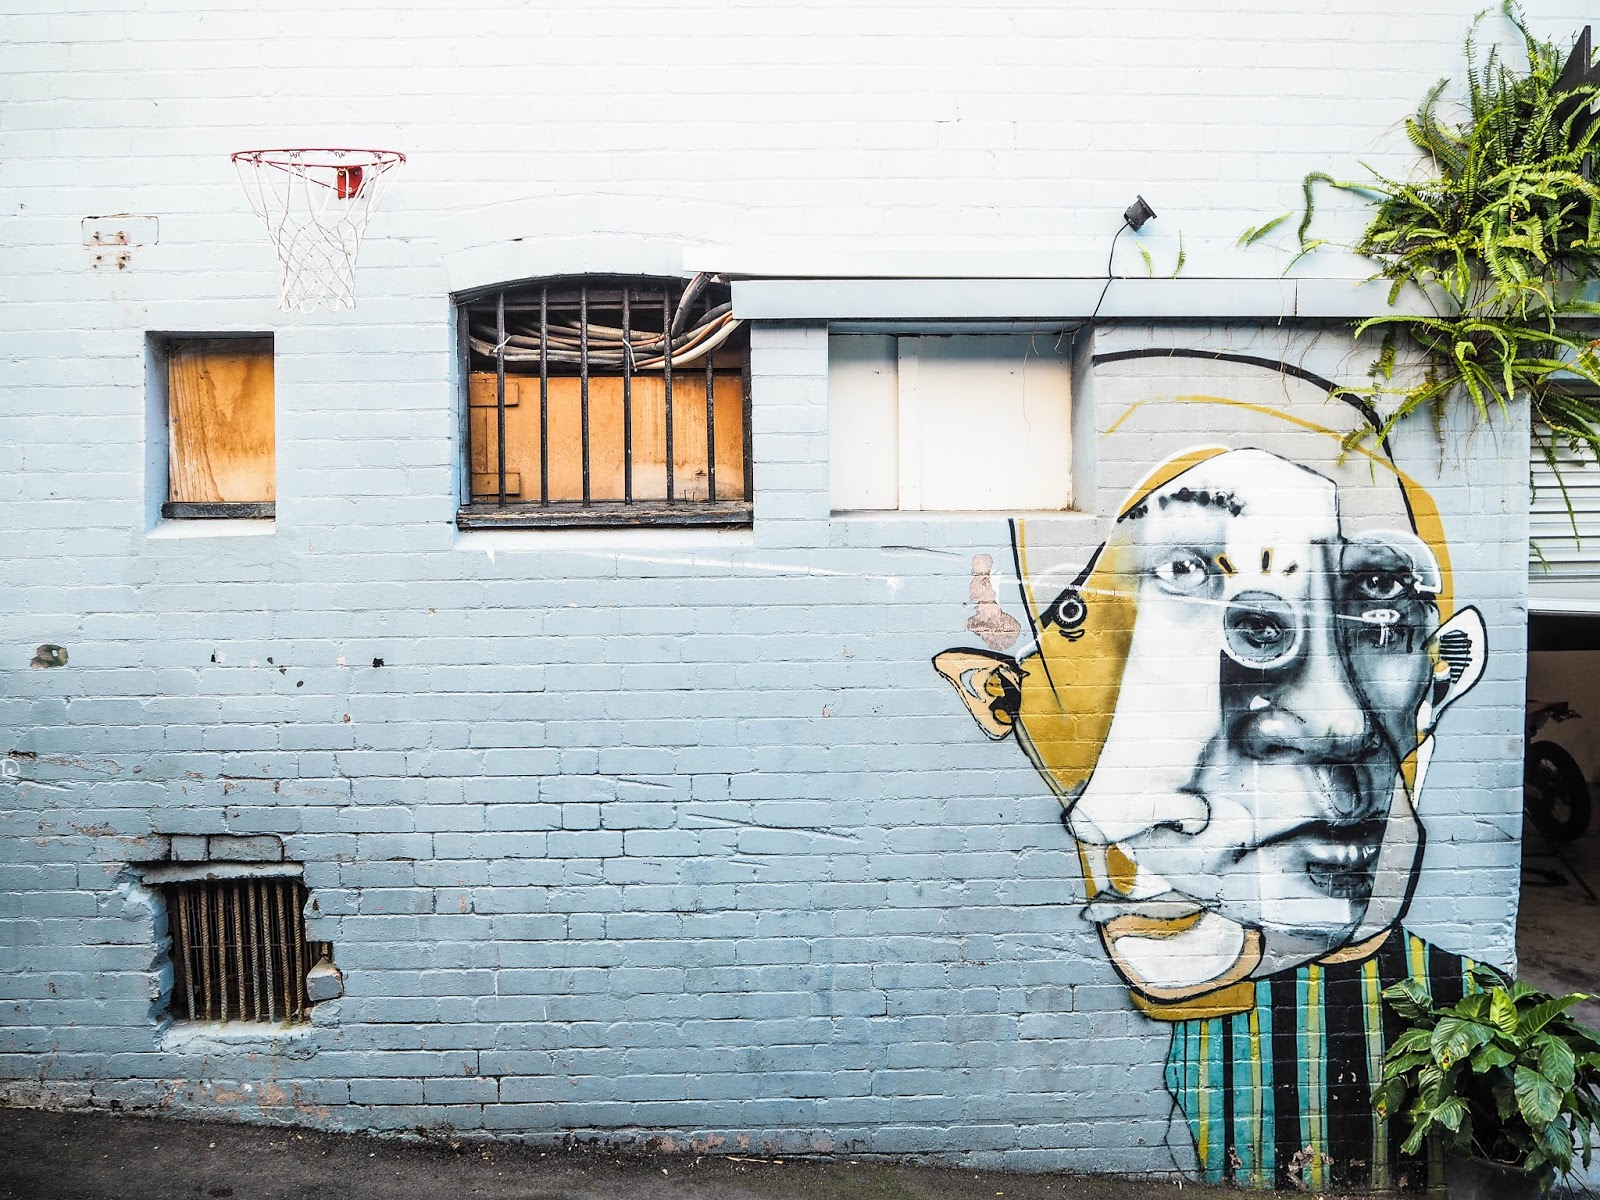 Street art in Paddington, Sydney